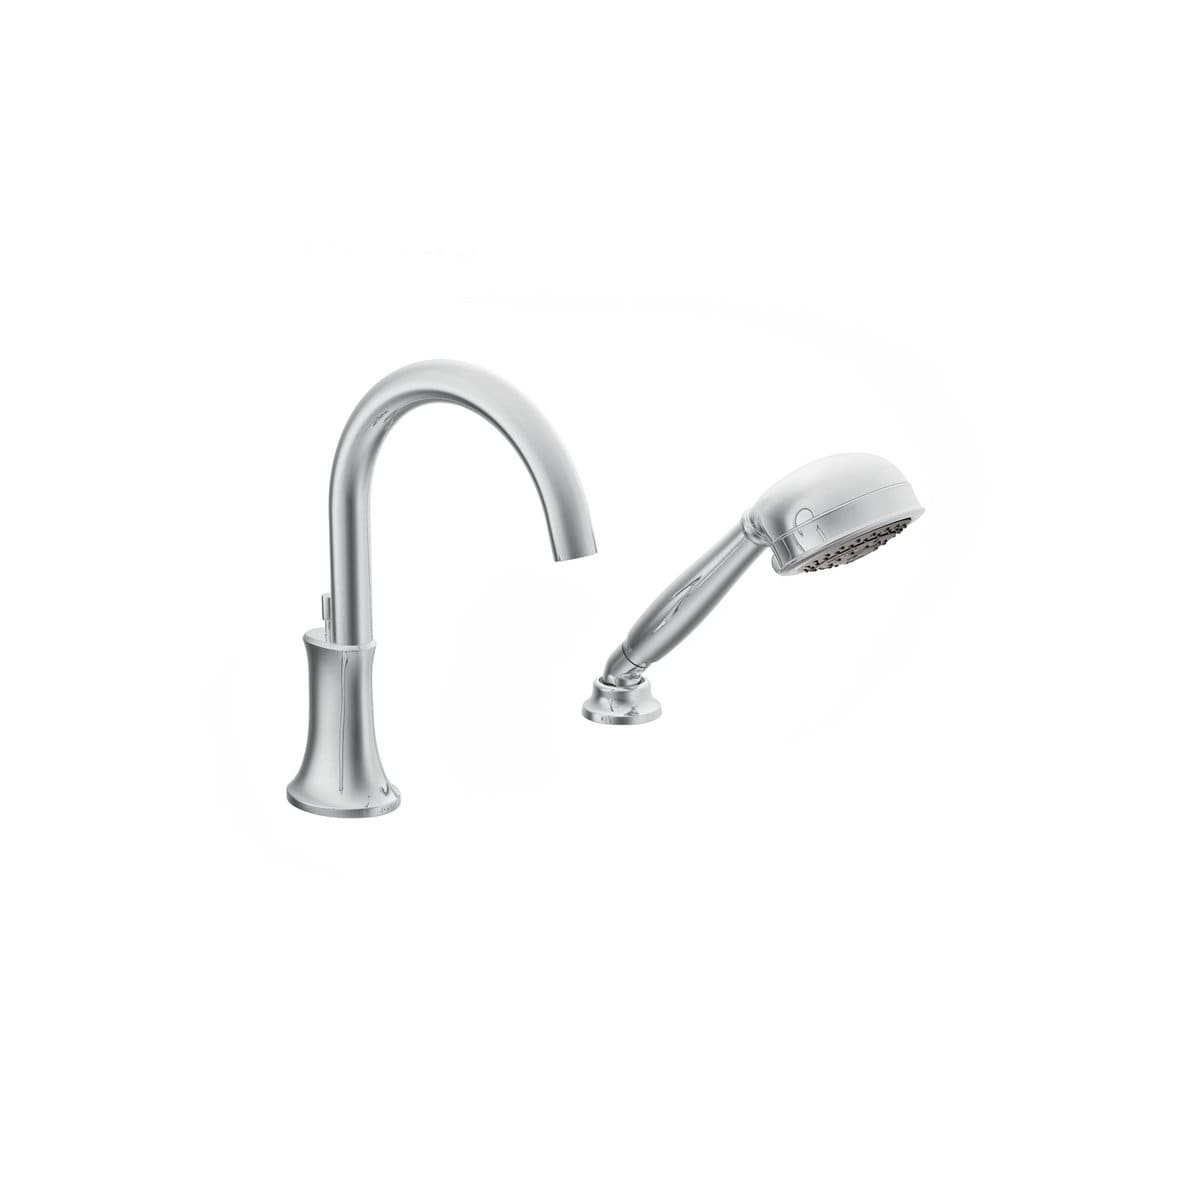 Moen TS9622 Chrome Roman Tub Faucet Trim With IoDIGITAL Technology And  Single Function Hand Shower From The Icon Collection (Less Valve)    Faucet.com